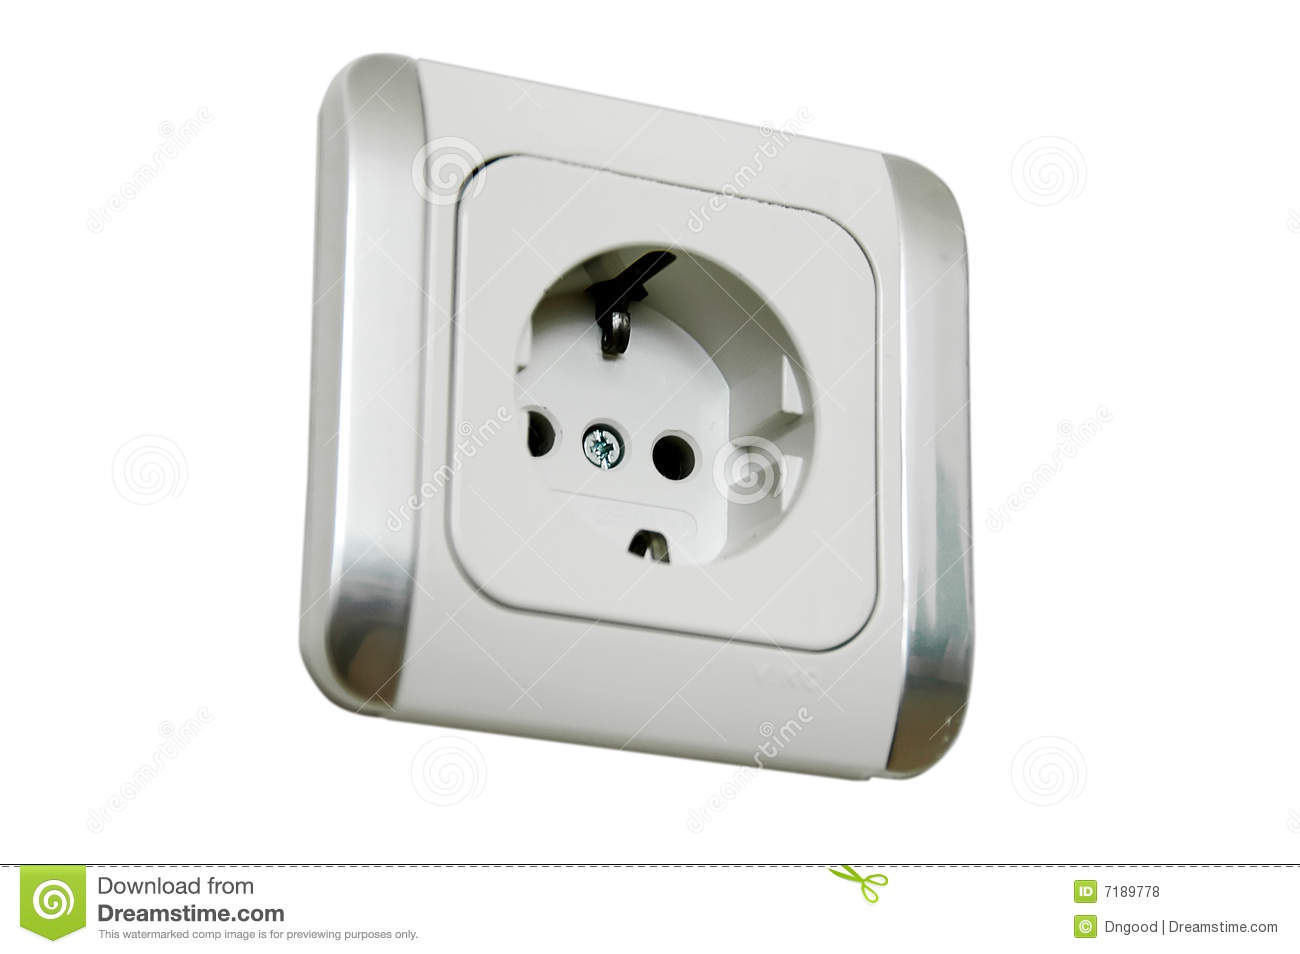 Stock Photography Children Playing Electrical Extension Outlet Two Floor Home Image40100292 as well Stock Photo Blueprint Technical Draw Different Bulb Socket White Background Image35577280 further Mk Switched Double Socket 13  Double Pole Red 1165 P furthermore evchargingsolutions co moreover 2017 Optima Hybrid Plug In At Kia Of Greer In Greer SC. on electric switch plug